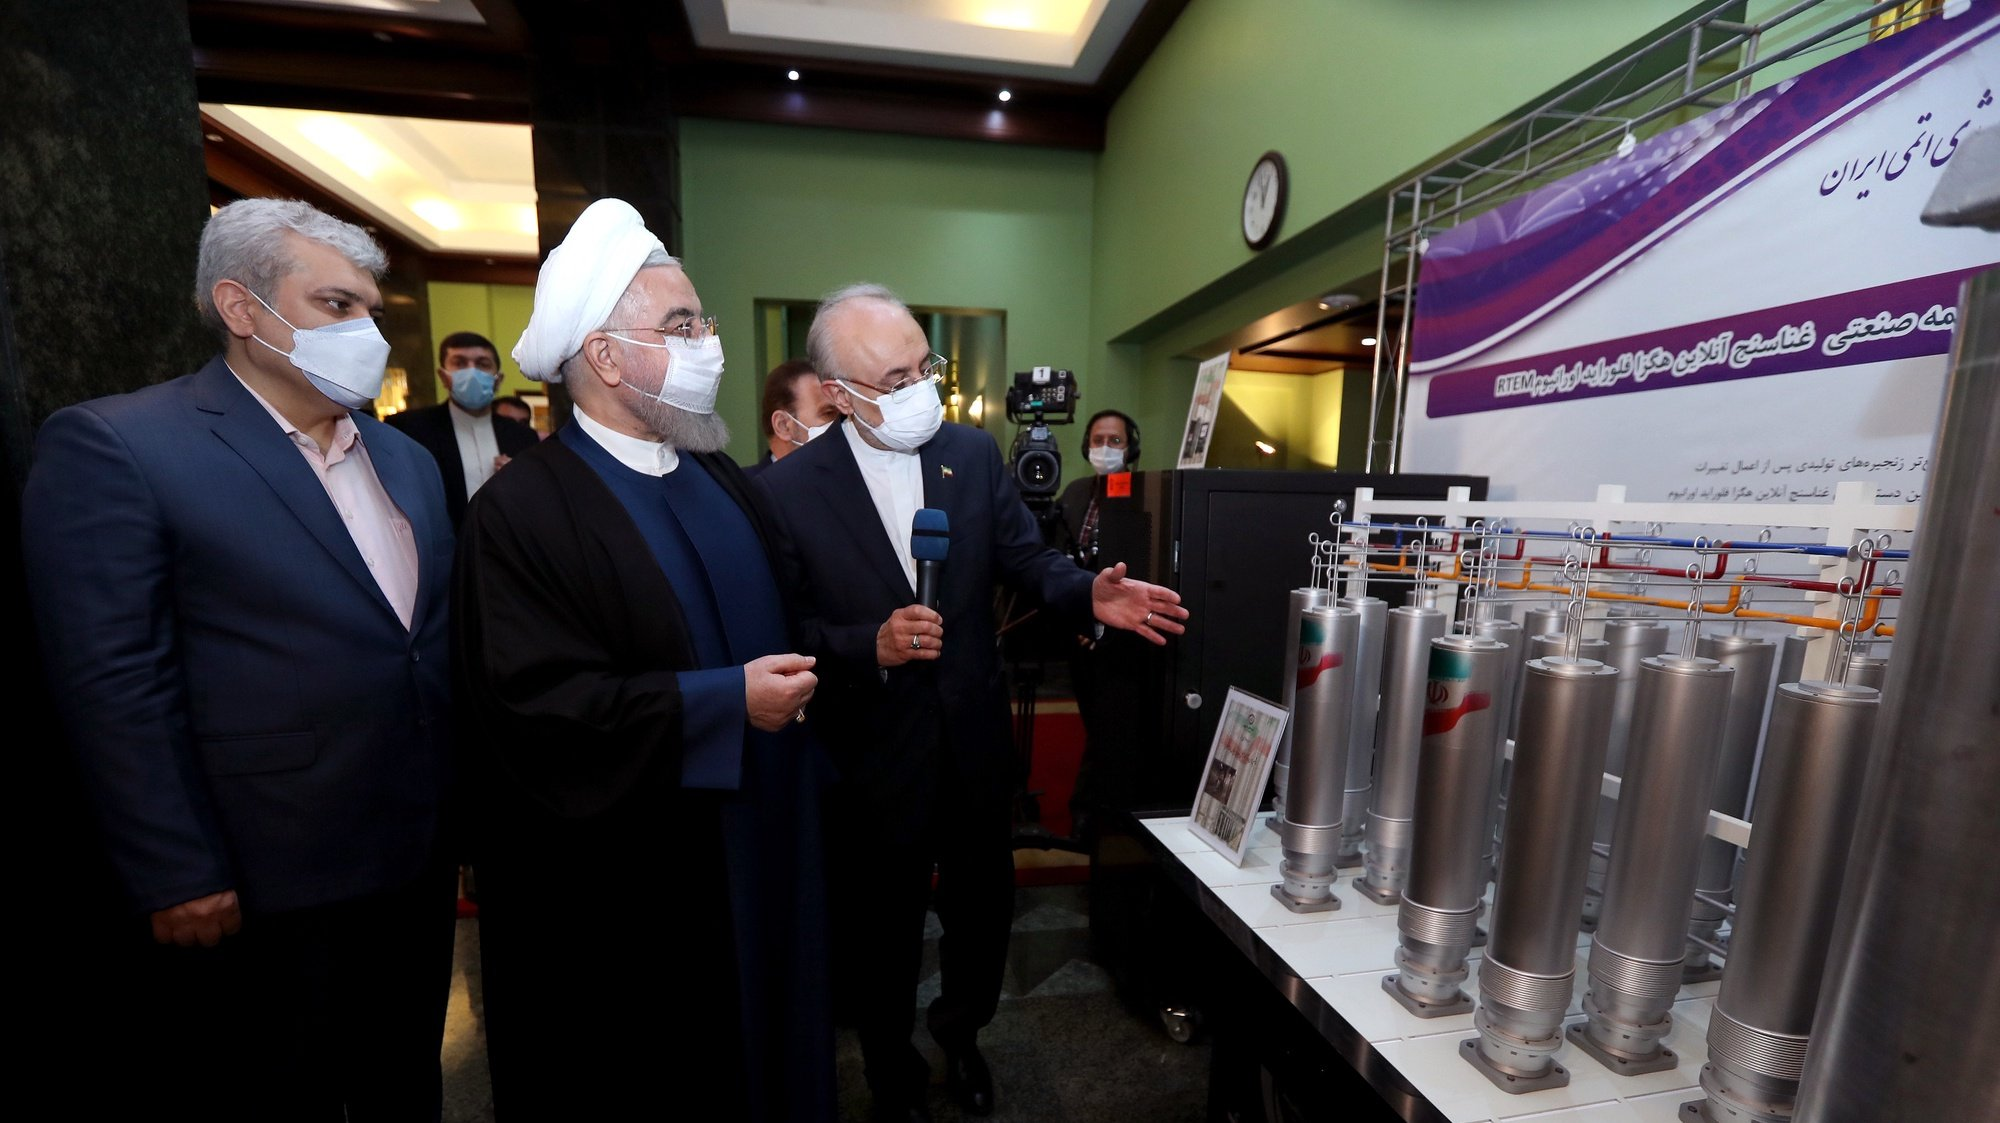 epa09126292 A handout picture made available by the Iranian presidential office shows Iranian President Hassan Rouhani (C) and head of Iran's nuclear organization Ali Akbar Salehi (R) visits an exhibition of nuclear achievement on the occasion of Iran Nuclear Technology Day, in Tehran, Iran, 10 April 2021. According to Isna news agency, Rouhani said that 'US and west owe us about nuclear deal and they must make it up', referring to the sanctions against the country over Iran's disputed nuclear programm.  EPA/IRAN PRESIDENT OFFICE HANDOUT  HANDOUT EDITORIAL USE ONLY/NO SALES